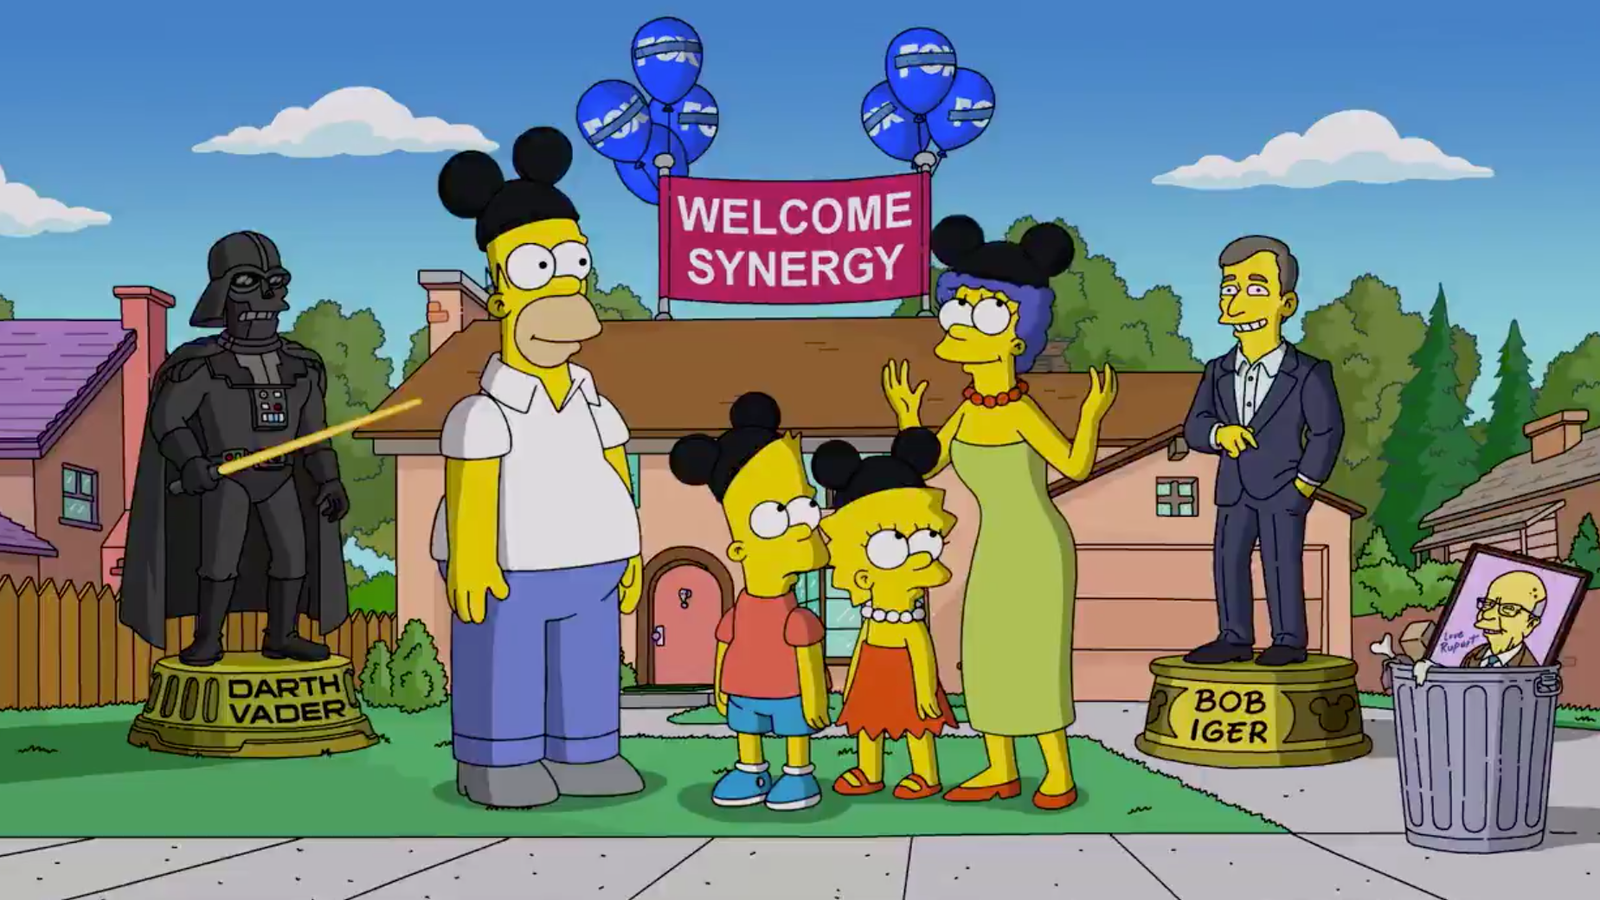 Iconic Disney family The Simpsons heading to the D23 expo this year